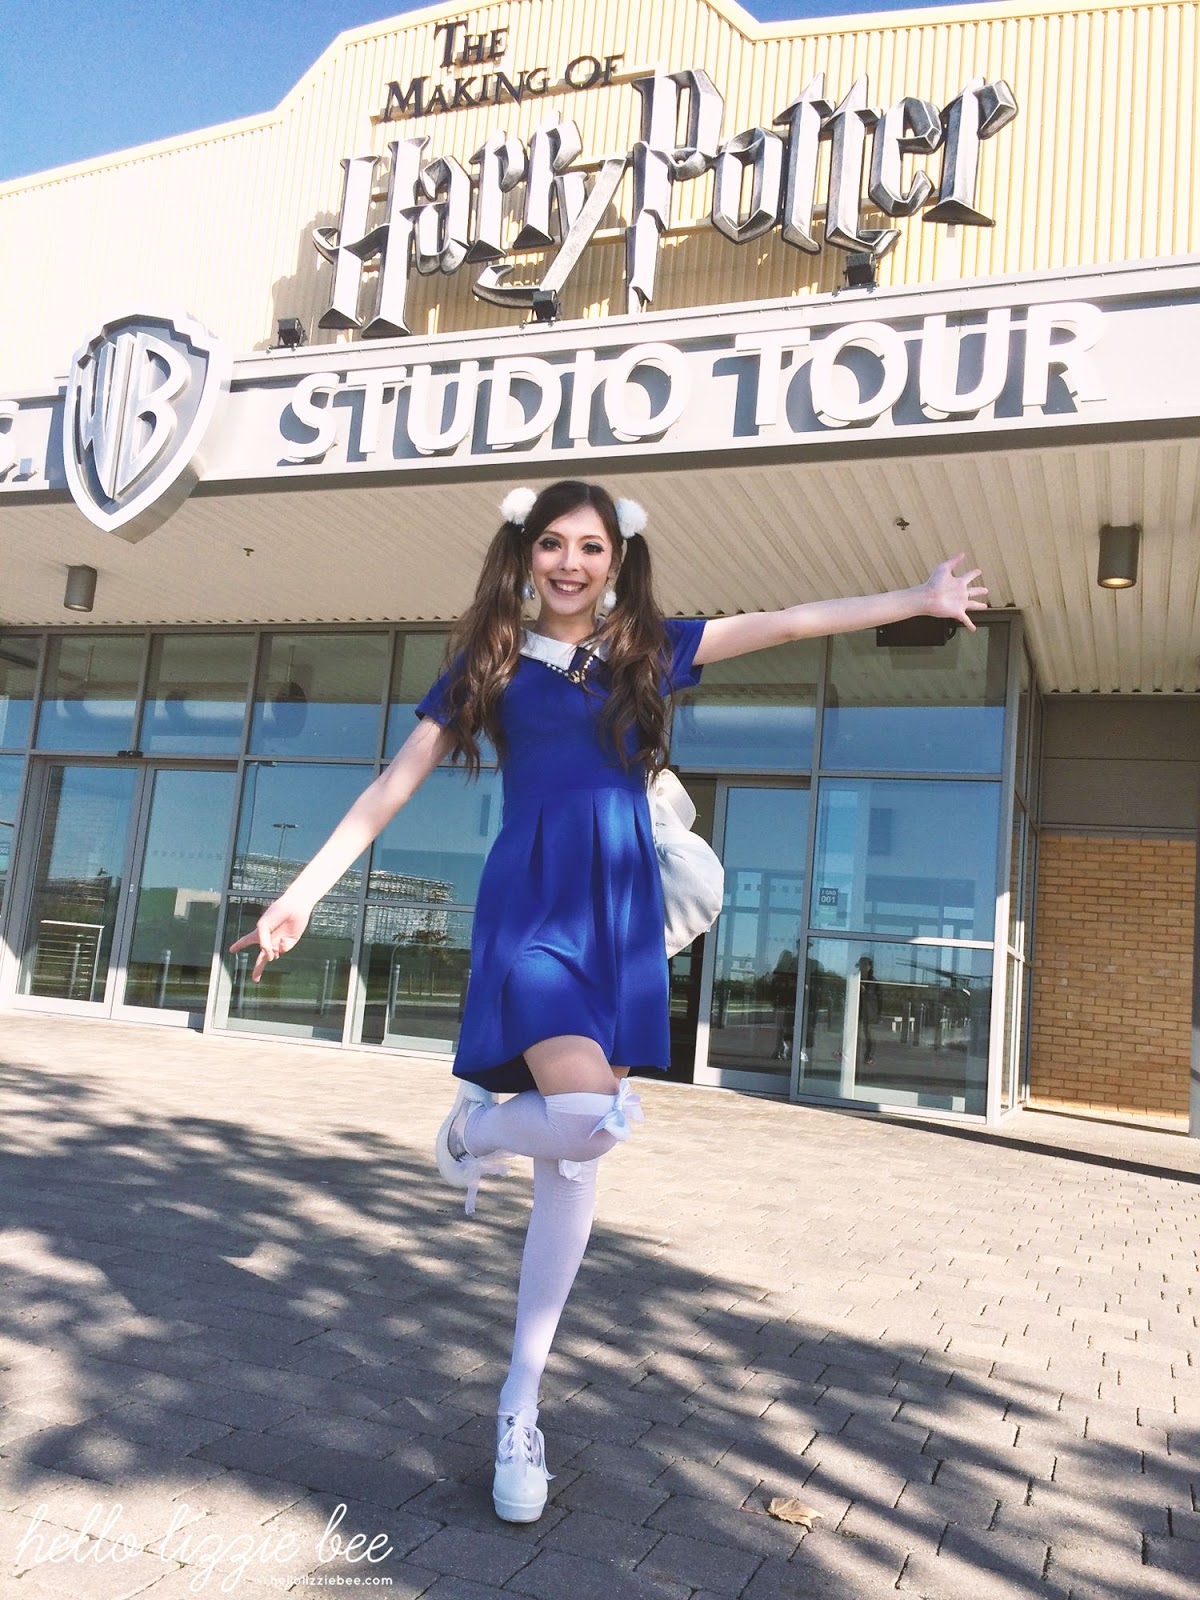 gaijin gyaru, swankiss, ravenclaw, harry potter studio tour